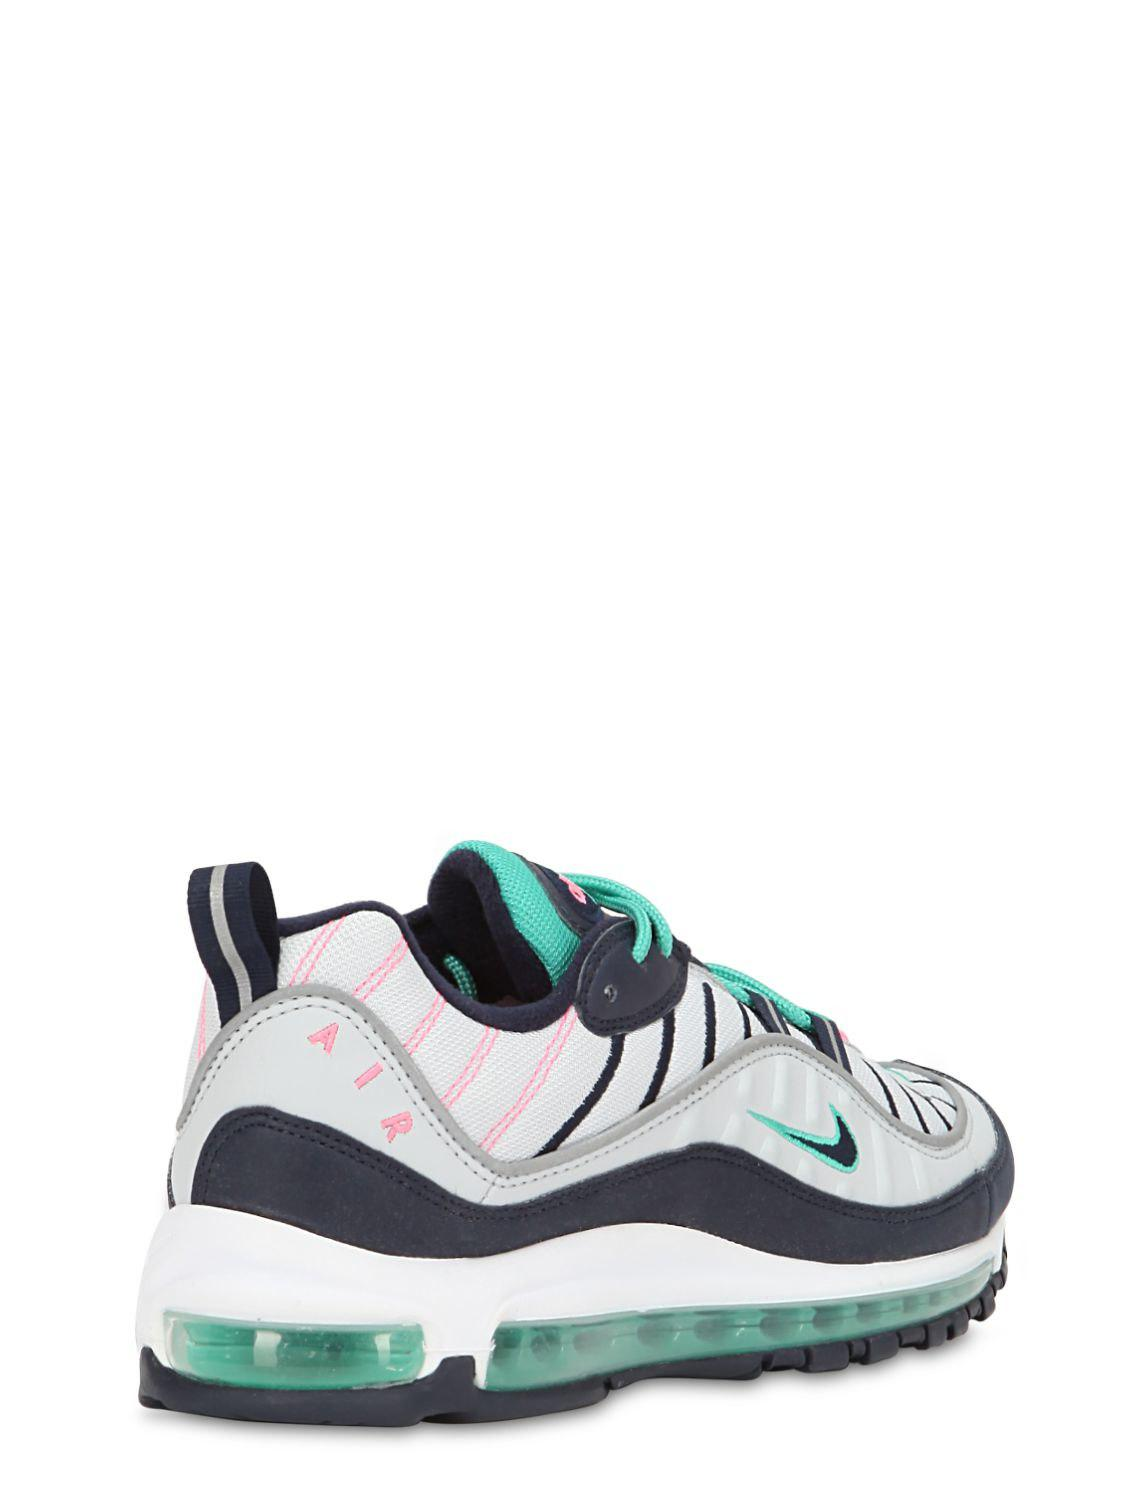 5721f191643206 Nike Air Max 98 South Beach Sneakers in Green for Men - Lyst